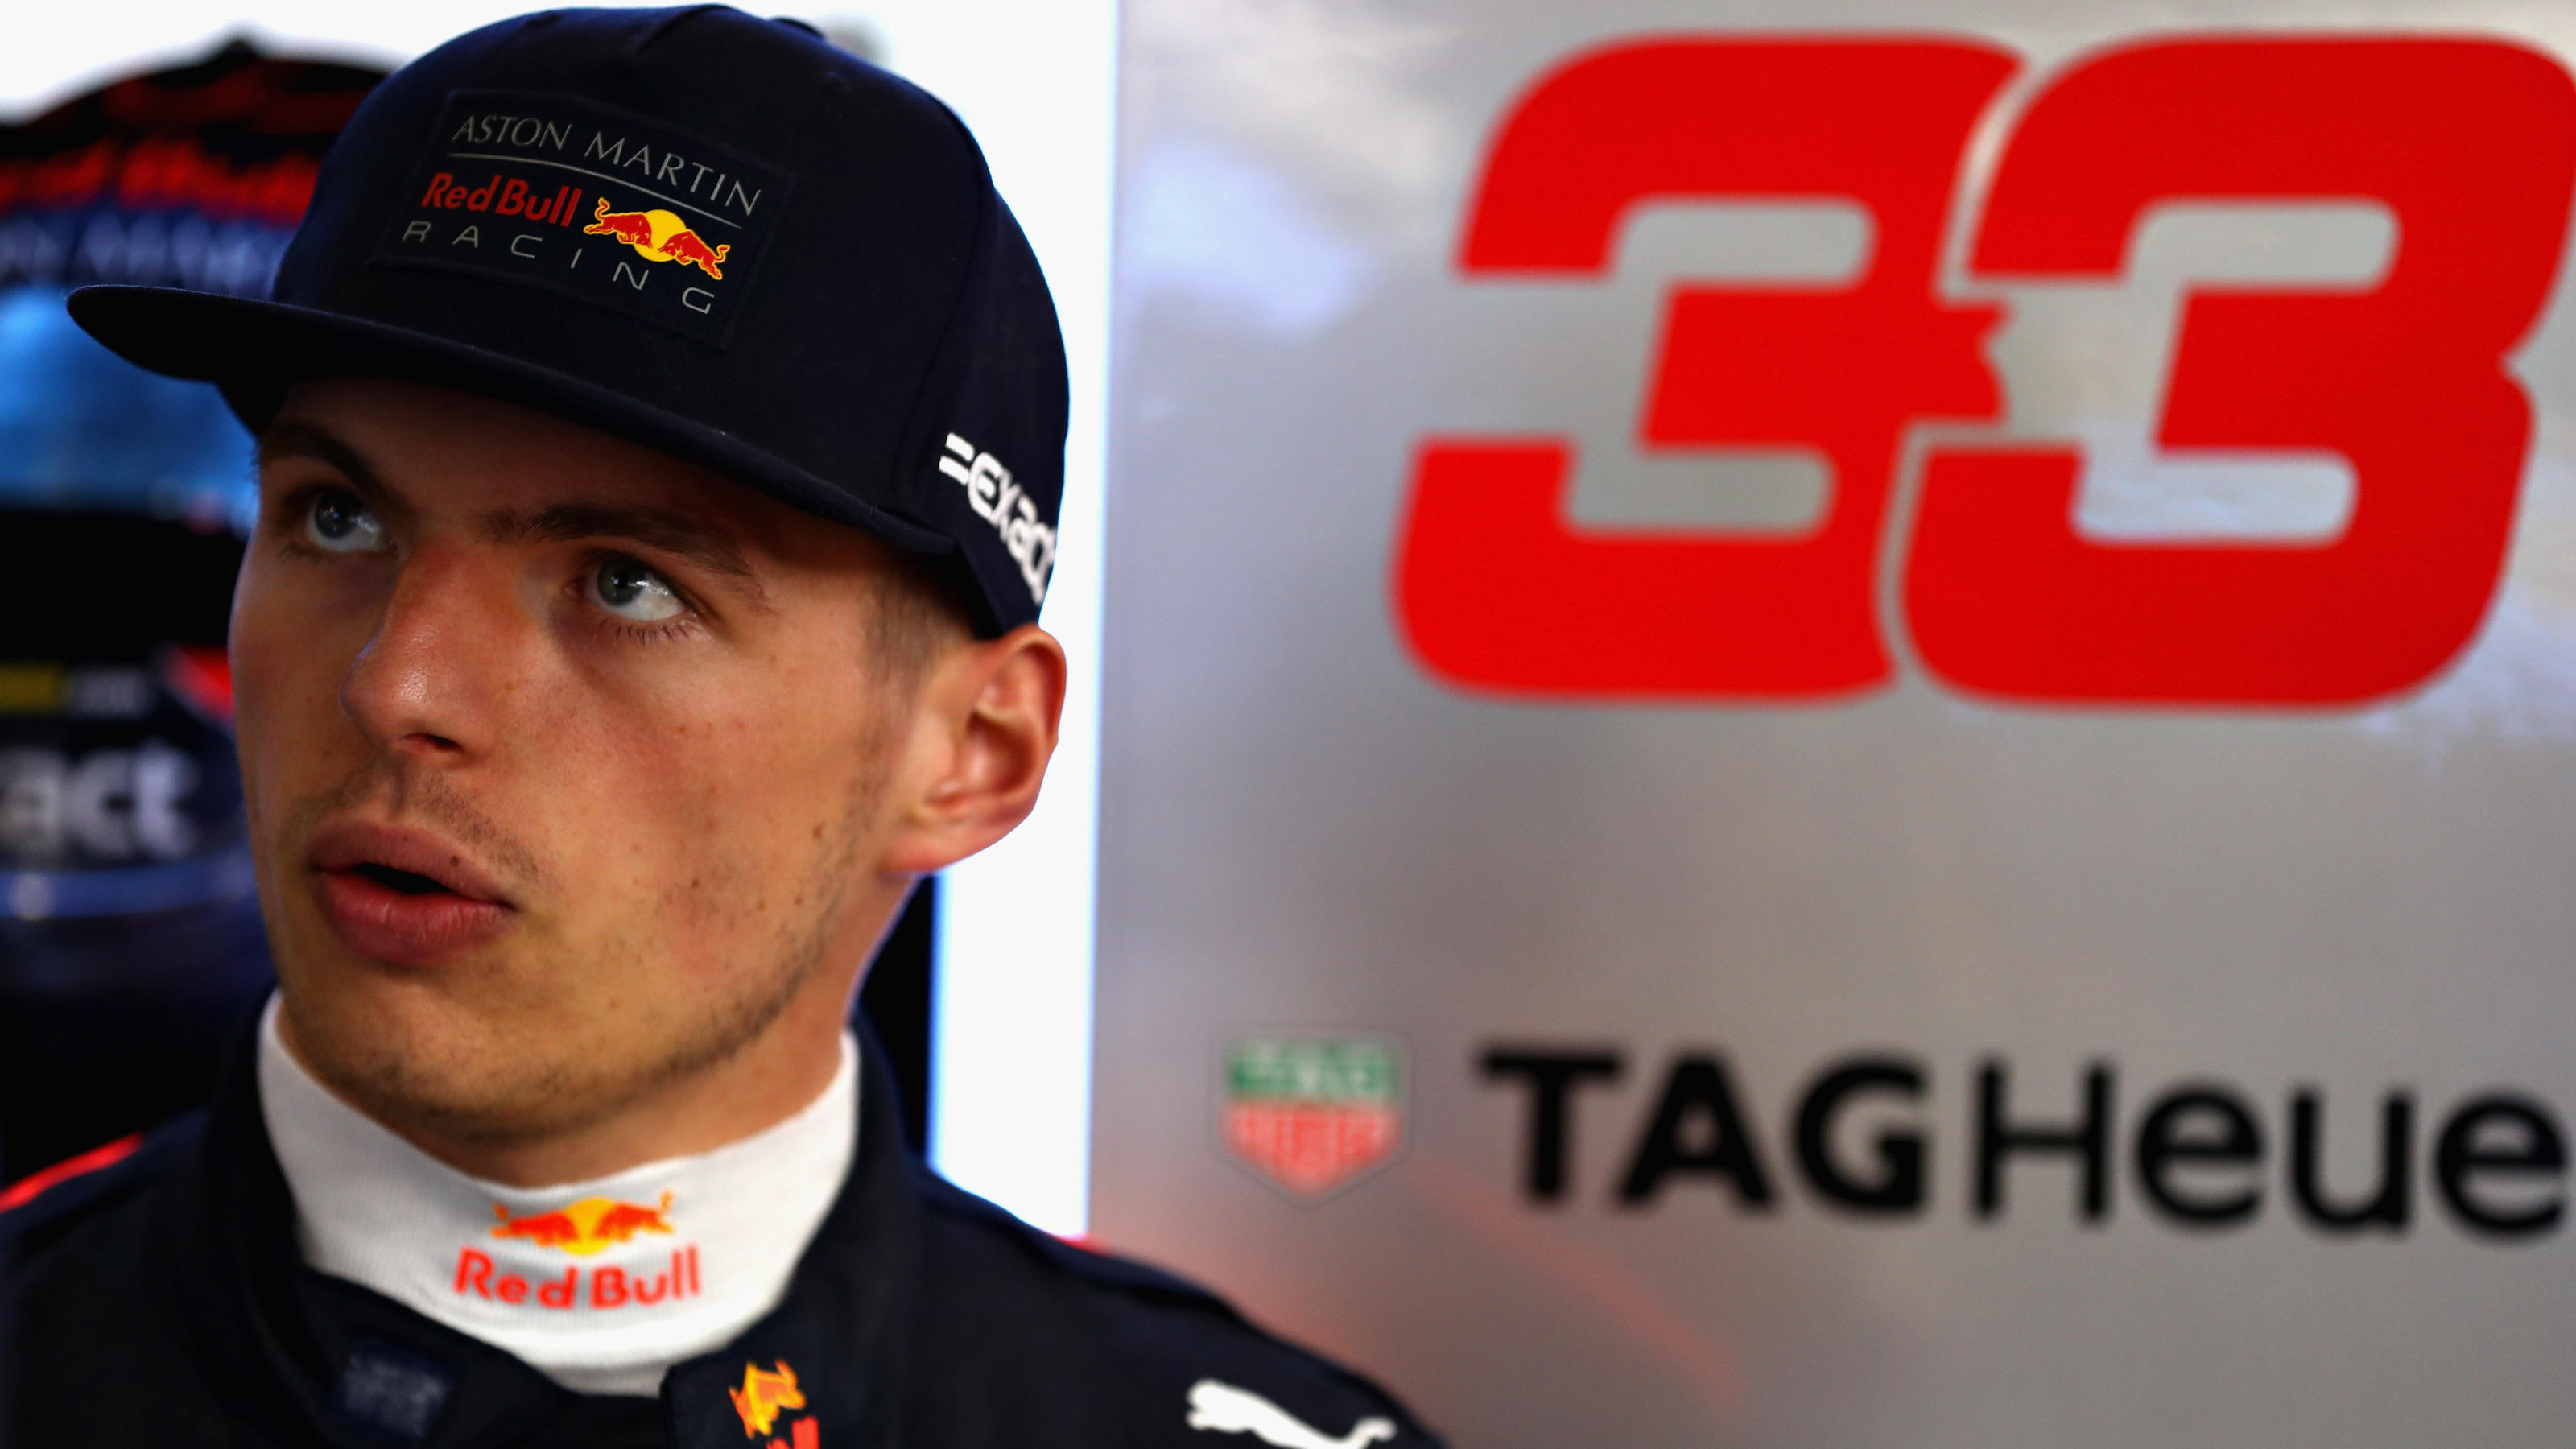 SHANGHAI, CHINA - APRIL 14: Max Verstappen of Netherlands and Red Bull Racing looks on in the garage during qualifying for the Formula One Grand Prix of China at Shanghai International Circuit on April 14, 2018 in Shanghai, China.  (Photo by Mark Tho